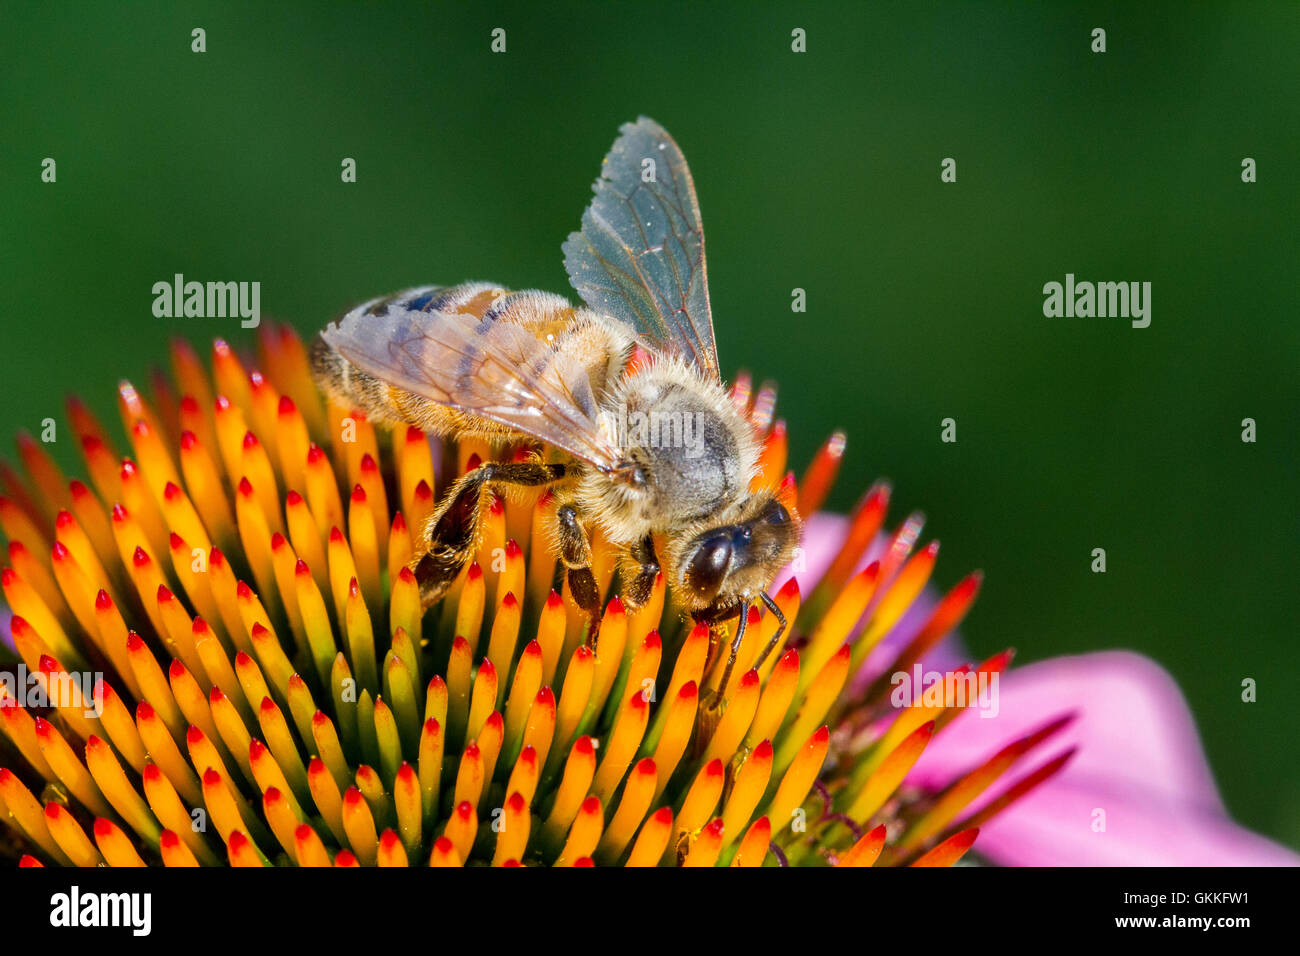 Bee pollinating a flower - Stock Image